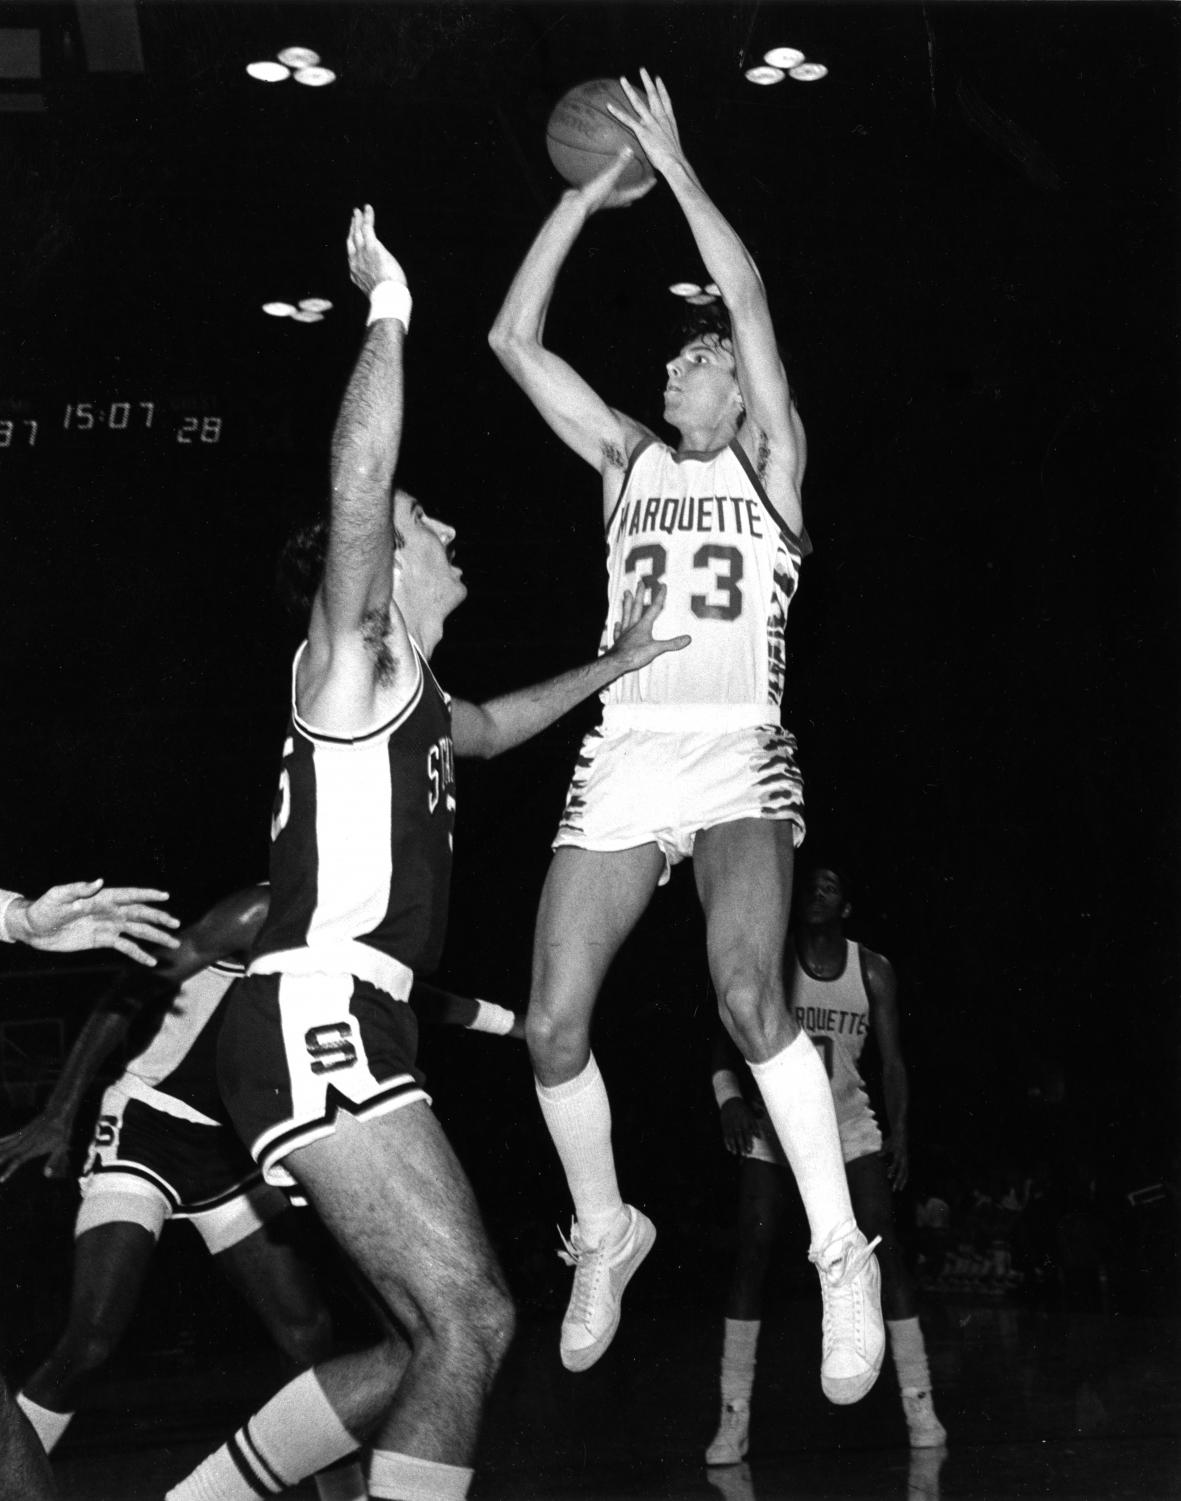 Wisconsin player T.J. Schlundt's father, Terrell, played at Marquette in the early 1980s. (Photo courtesy of Marquette University Department of Special Collections and University Archives).